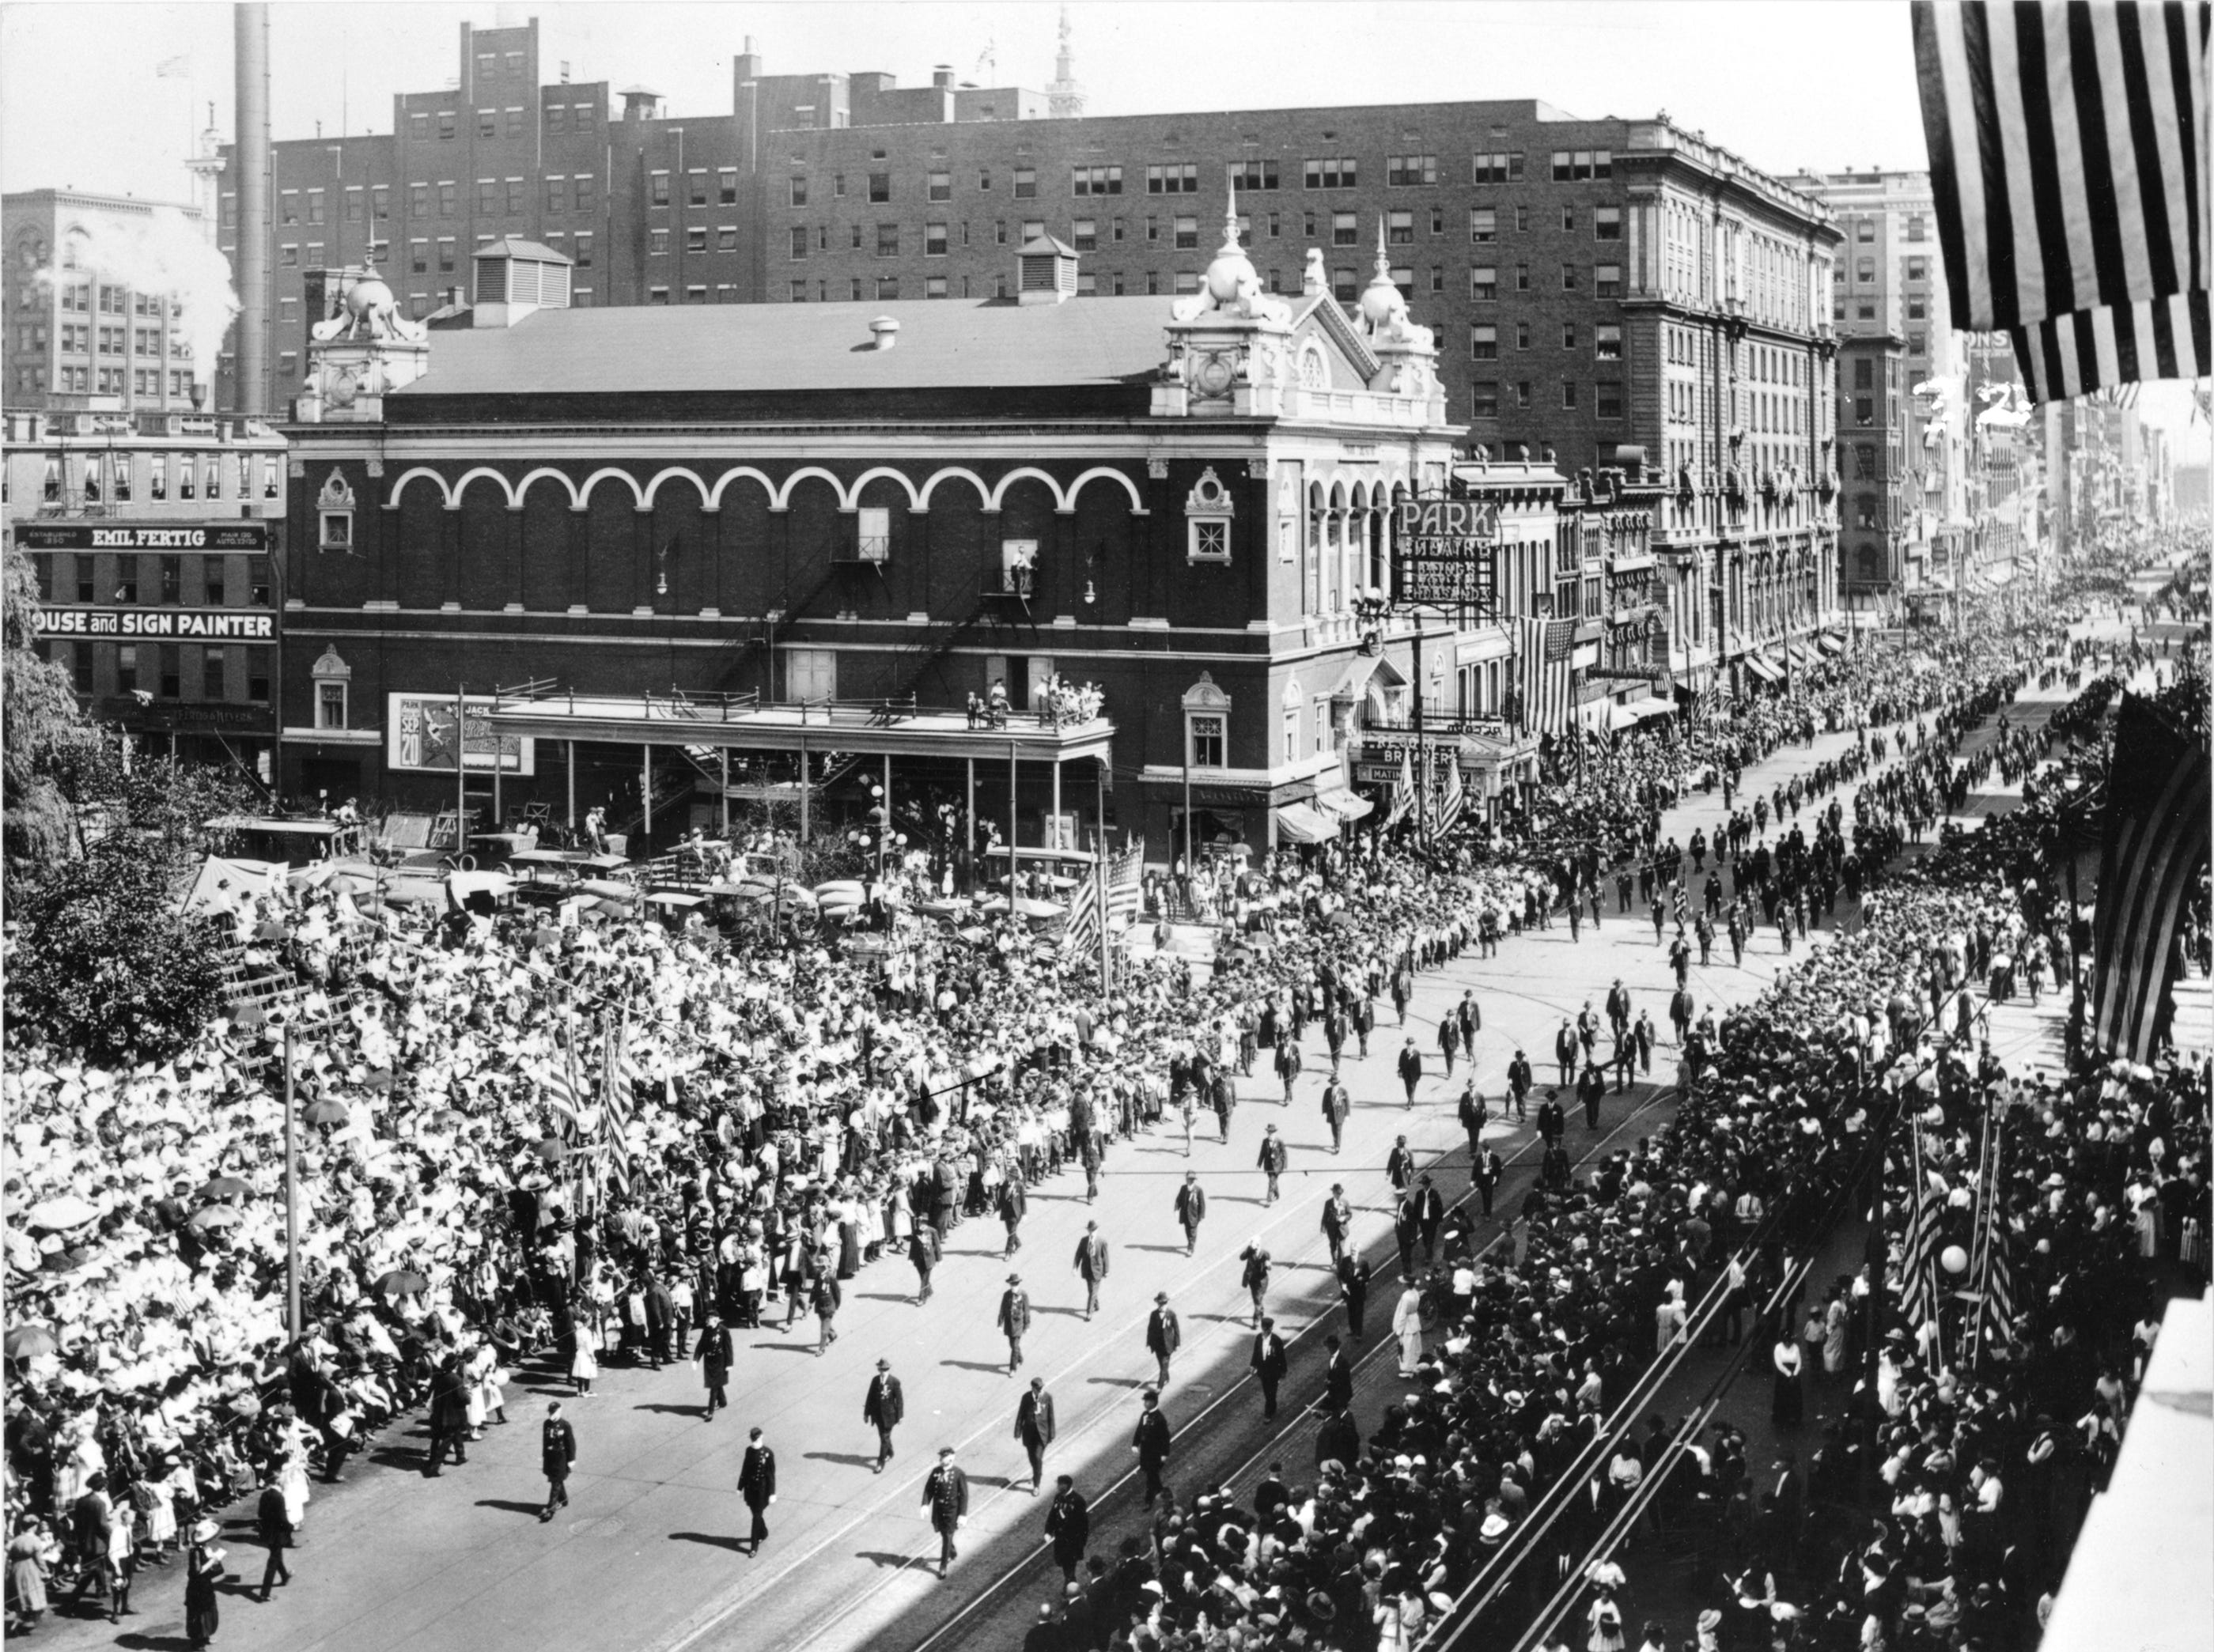 A column of 15,000 Civil War veterans parade down West Washington Street during the 54th Encampment of the G.A.R. (Grand Army of the Republic) in Indianapolis on Sept. 22, 1920. Marching tunes of the Civil War were played all along the line. It was estimated that 100,000 visitors were in the city. The spectators numbered between 75,000-90,000.